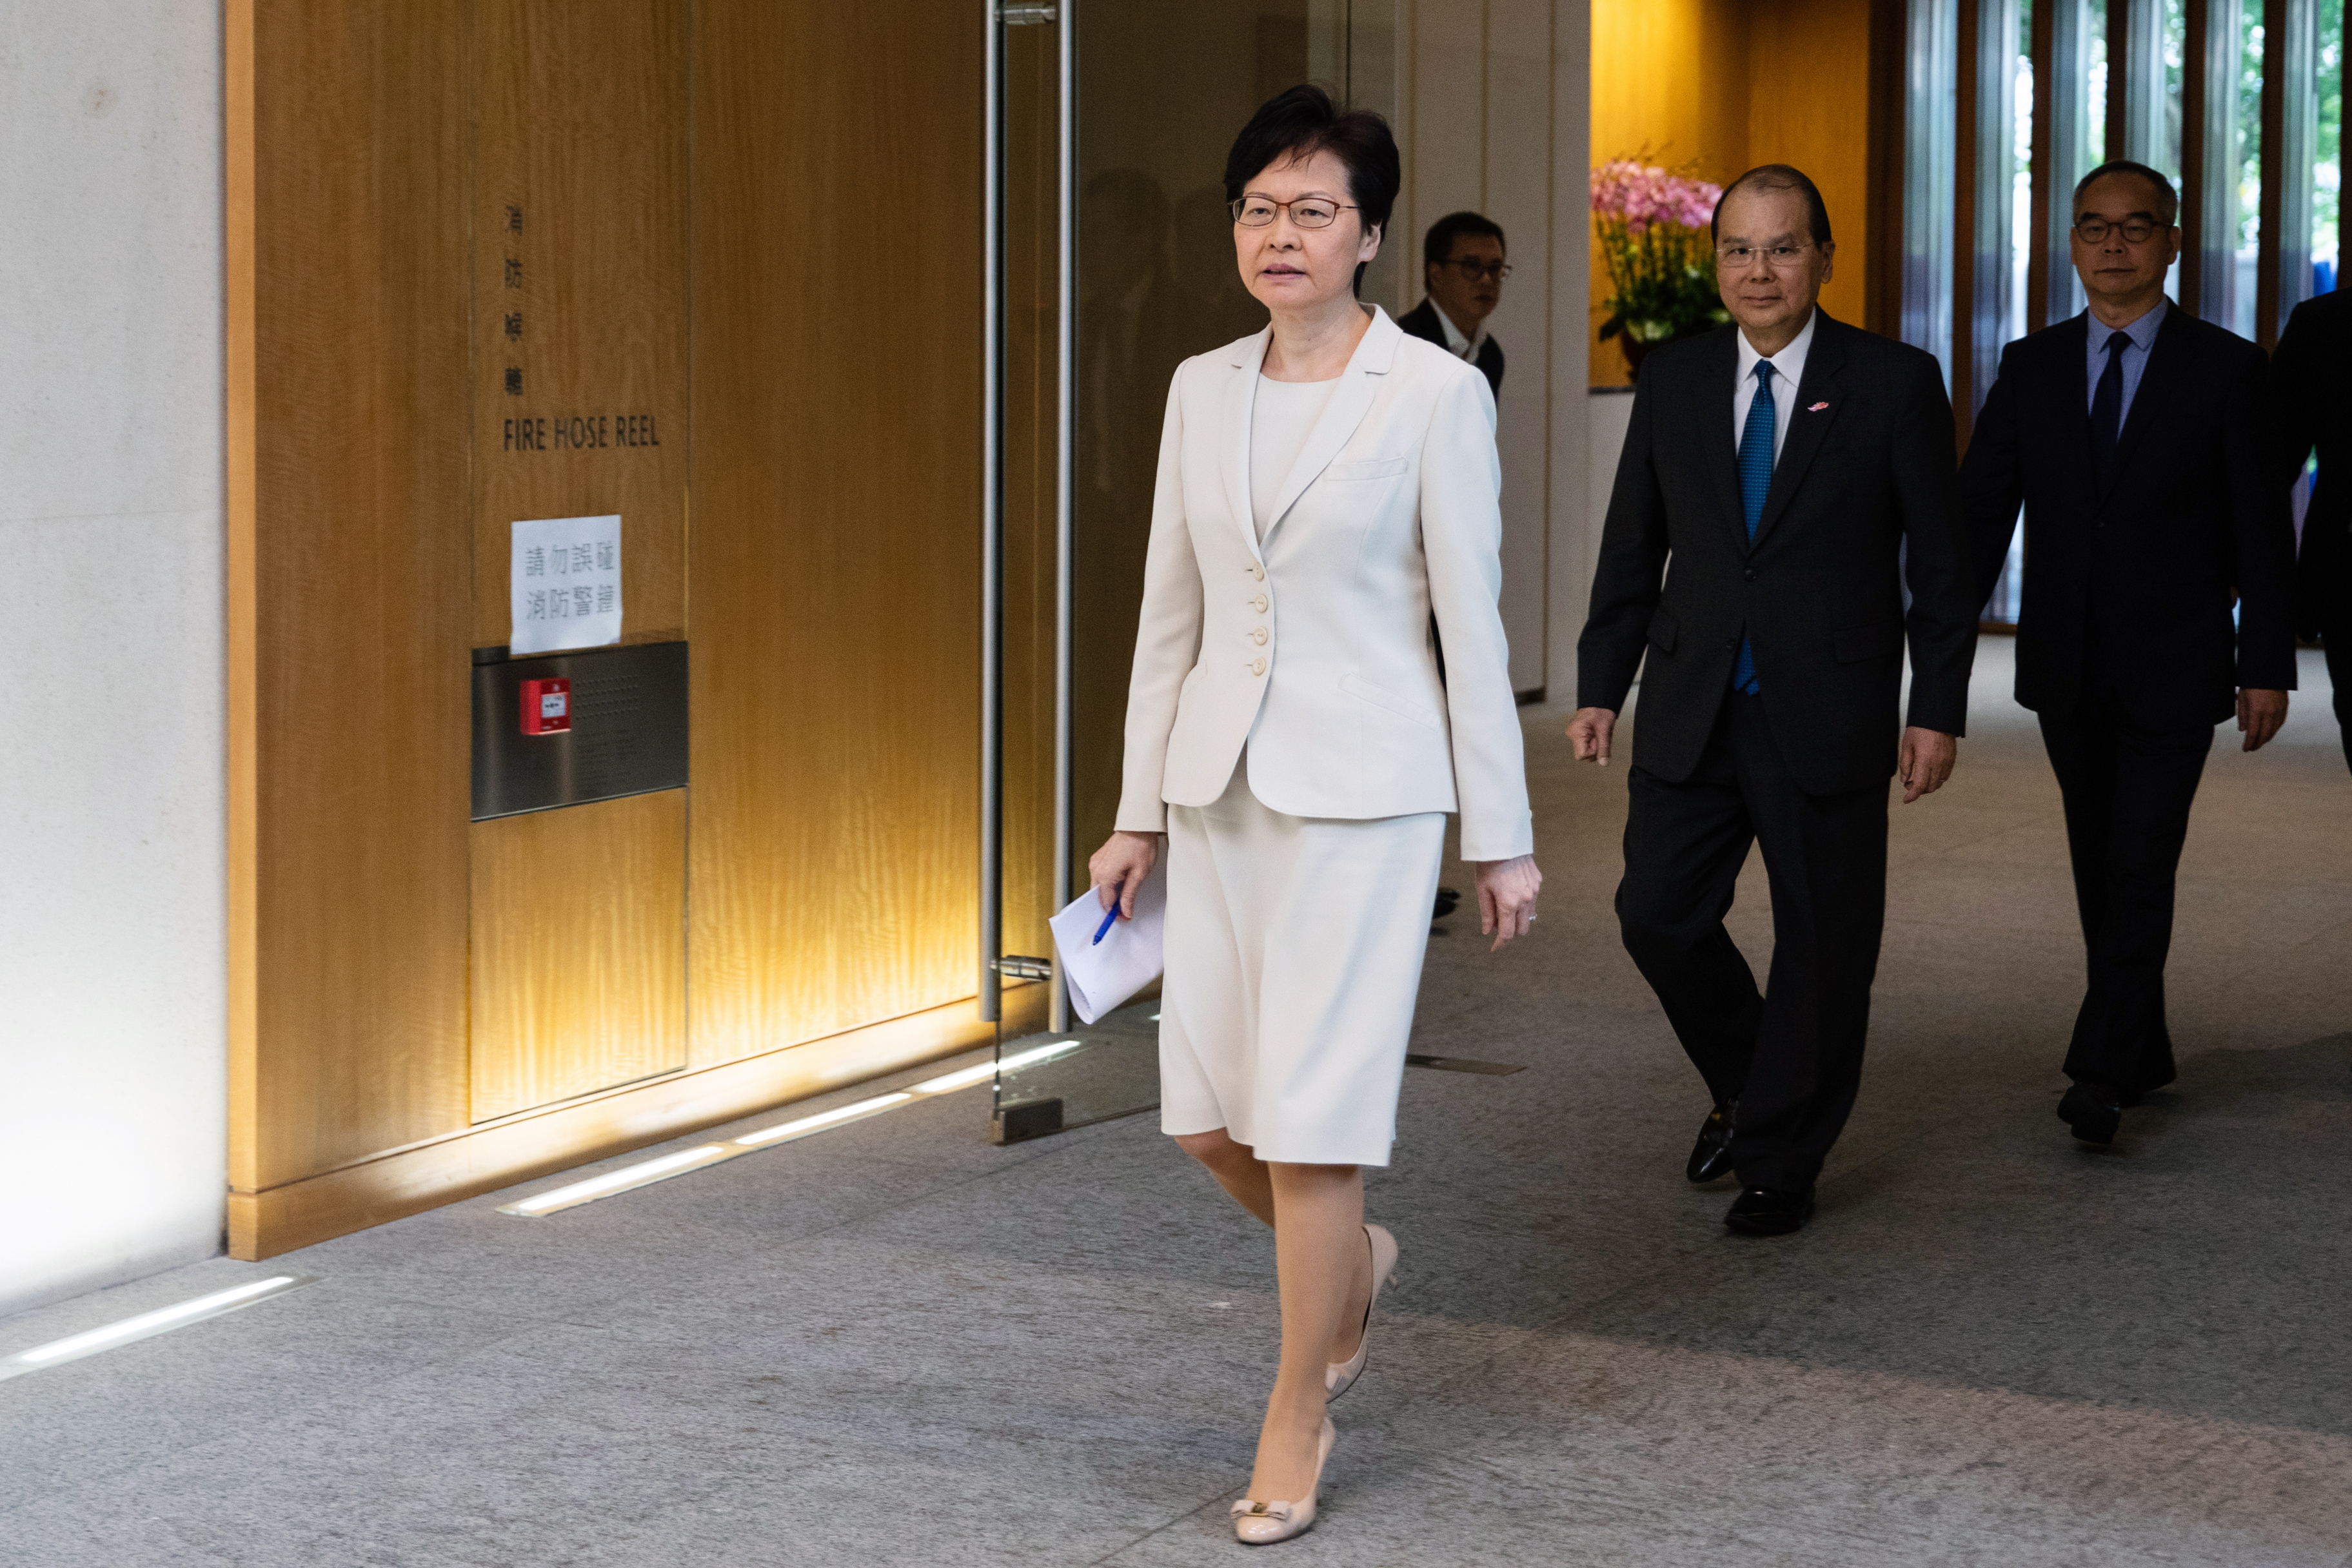 Carrie Lam and her top officials will hold the first of their planned community dialogue sessions on Sept. 26 as they seek a way out from the months-long anti-government protests in the city. Photo: Bloomberg